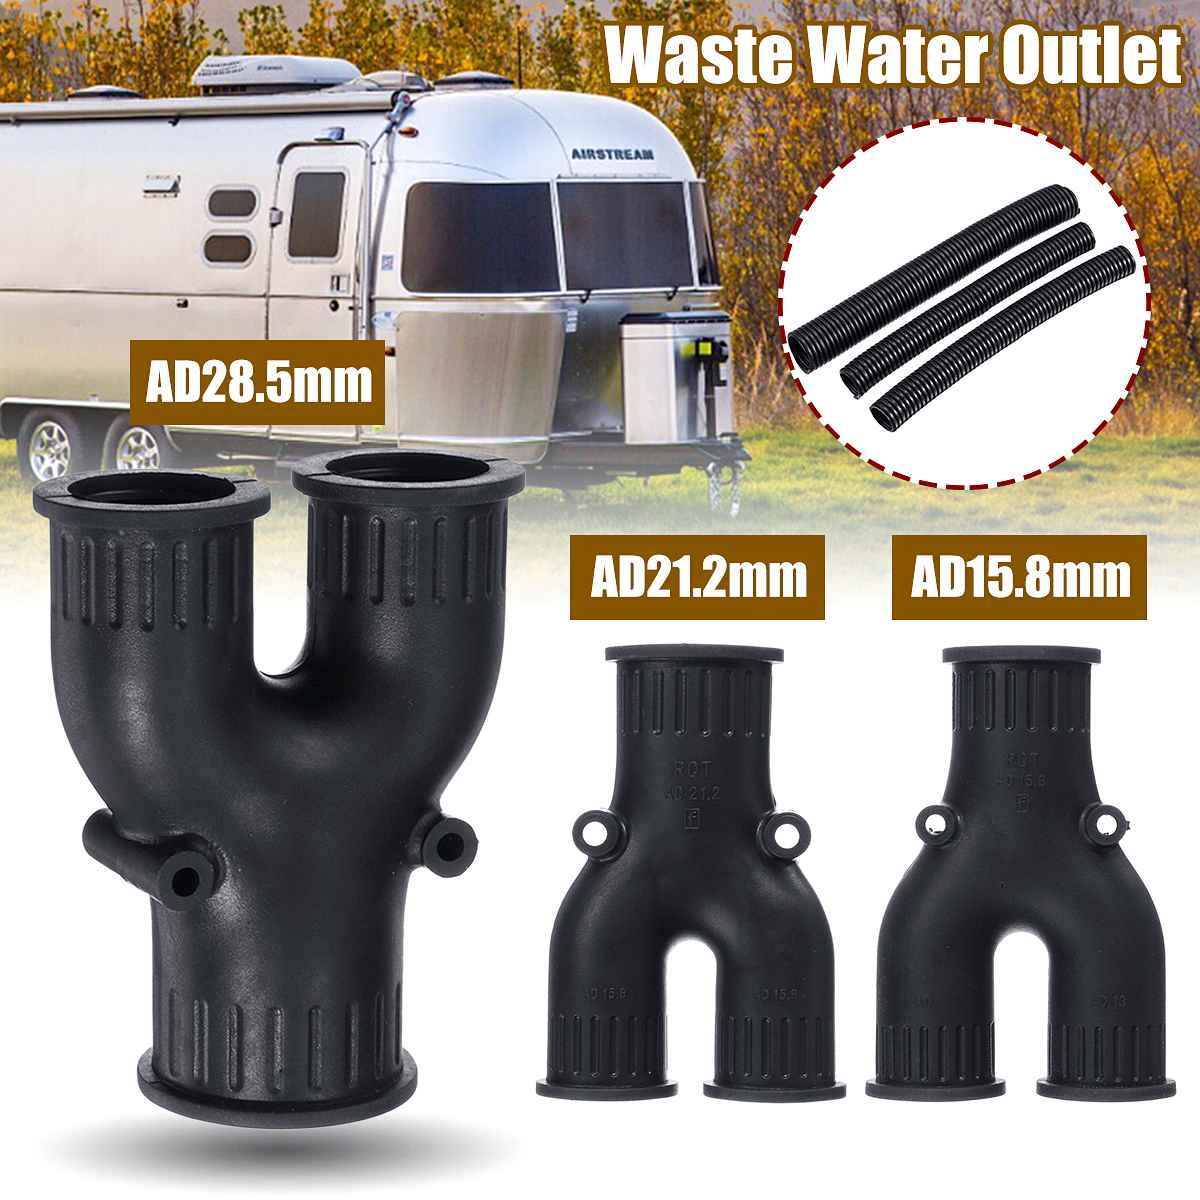 4Pcs Waste Water Outlet Hose Motorhome Caravan Car Accessories Water Drain Pipe Connector Kitchen Basin Pipe Hose Connector Set